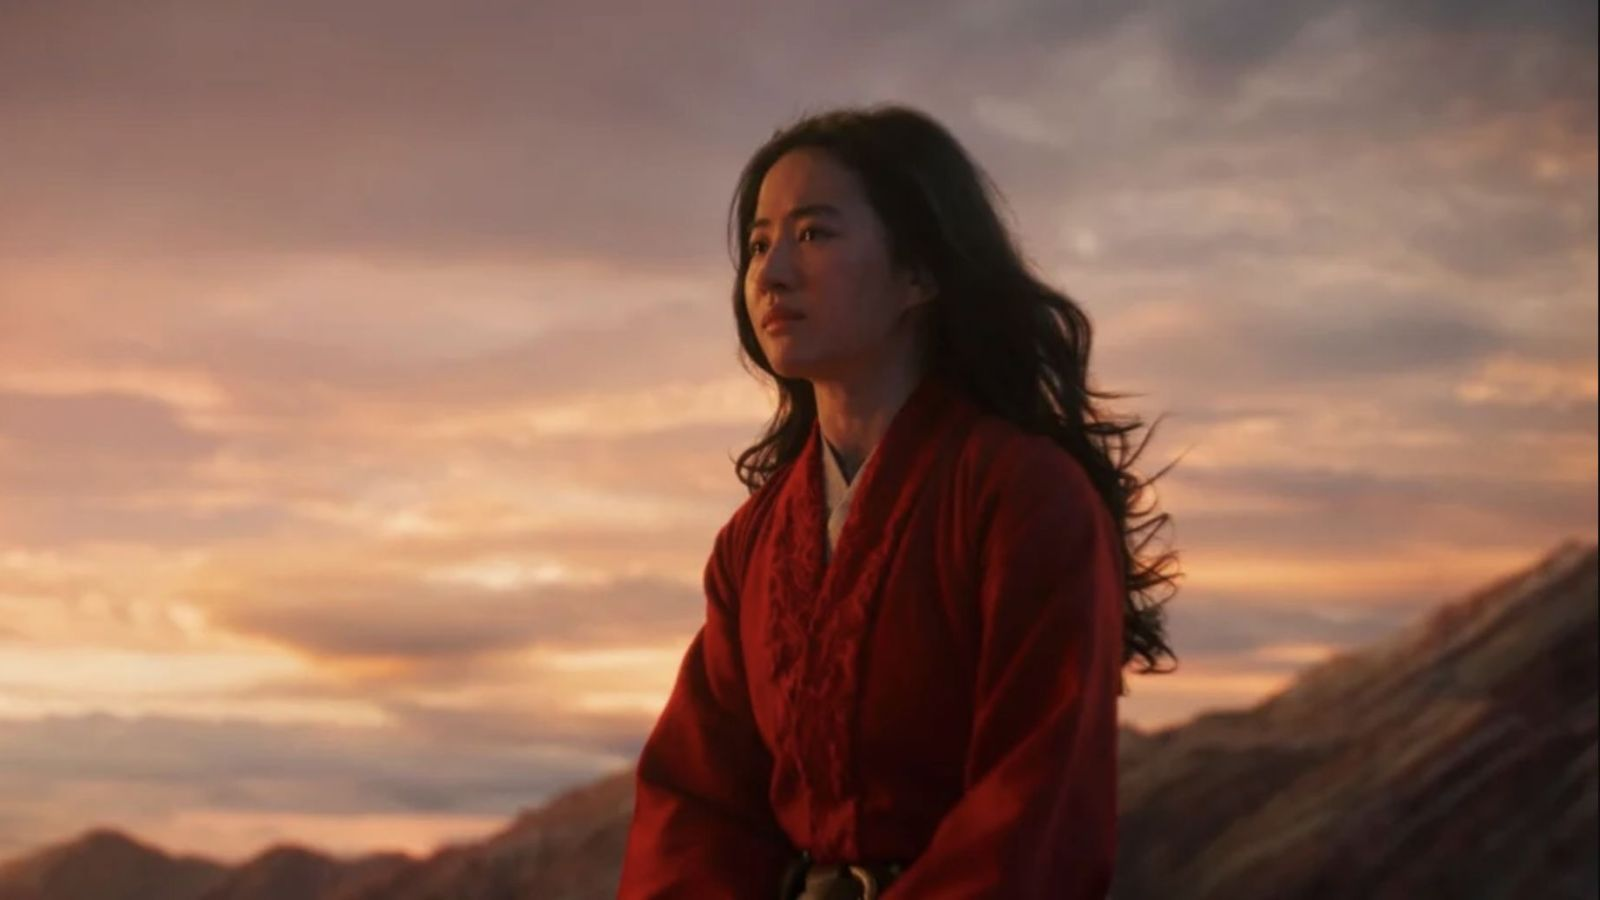 10 Movies You Should Watch In 2020